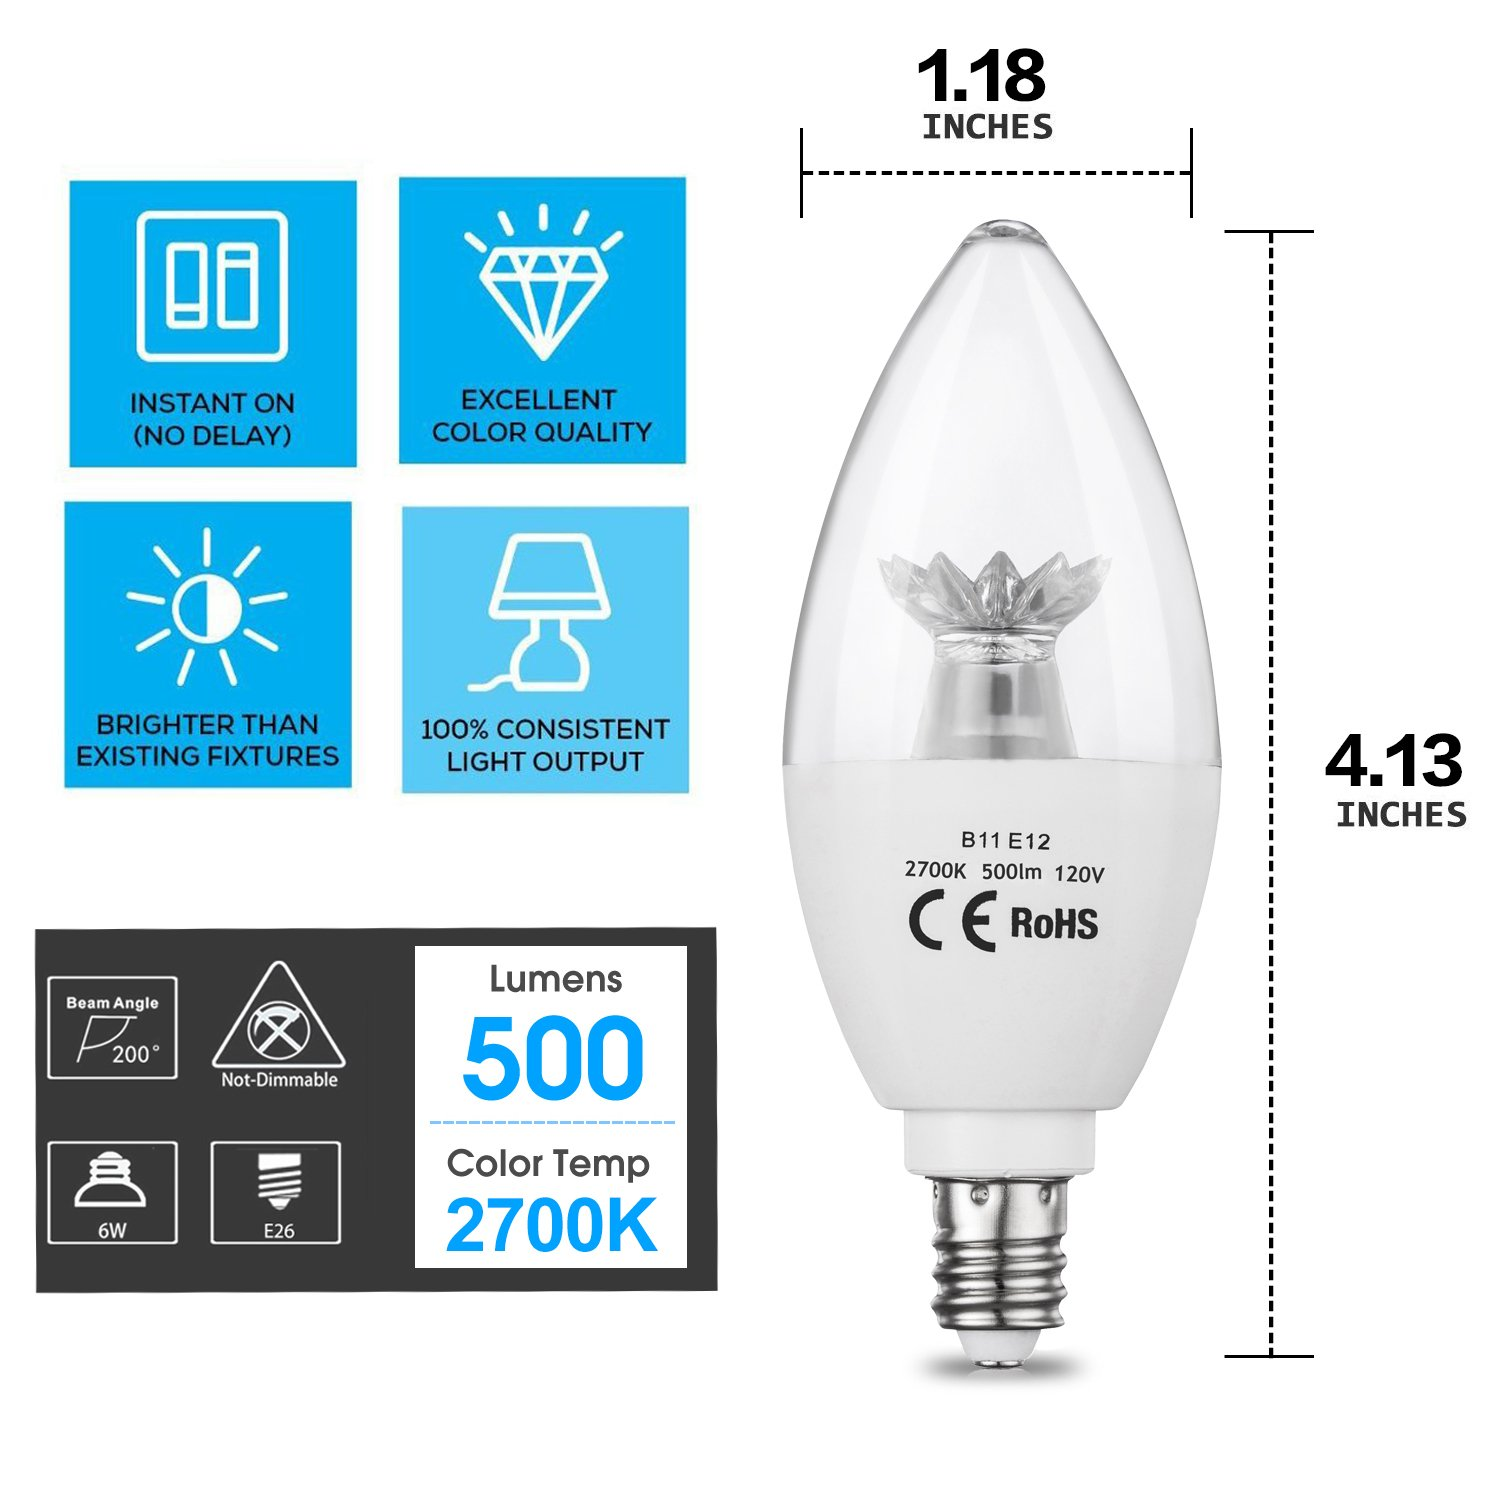 Pack of 6 CPLA LED Candle Light Bulbs 60W Incandescent Light Bulbs Equivalent 4000K Daylight LED Chandelier Light Bulb with Candelabra E12 Base Non-Dimmable